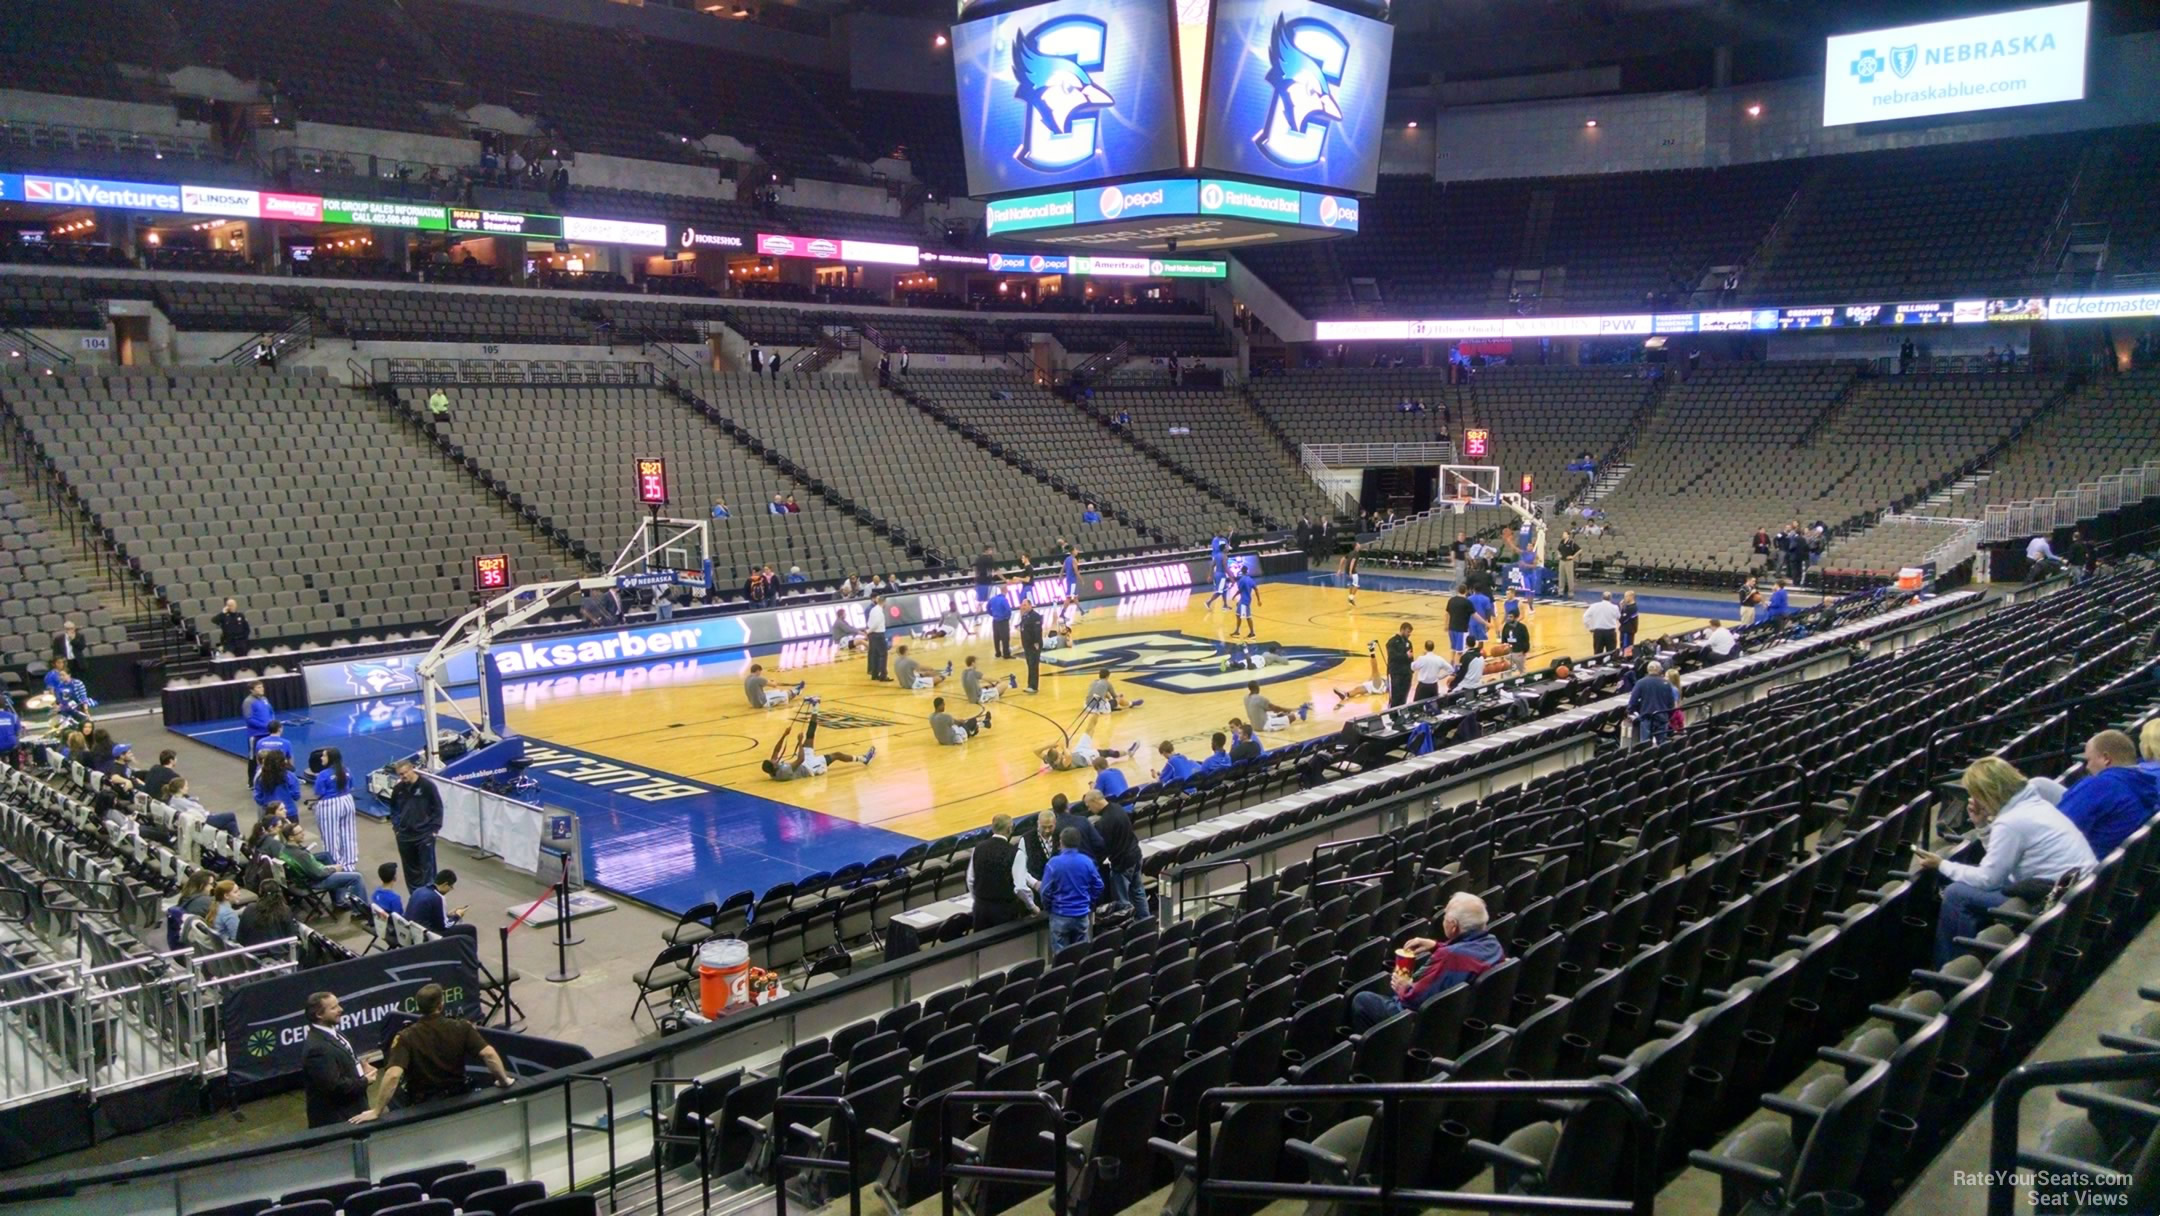 CenturyLink Center Section 125 - Creighton Basketball ... on landers center seating map, smoothie king center seating map, verizon center seating map, consol energy center seating map, santa ana star center seating map, centurylink arena seating chart, centurylink center concert, target center seating map, centurylink omaha seating-chart, bethel woods center for the arts seating map, scottrade center seating map, sears center seating map, united center seating map, cintas center seating map, centurylink field 3d seating chart, centurylink center concessions, ford center seating map, columbus civic center seating map, bb&t center seating map, mccarthey athletic center seating map,